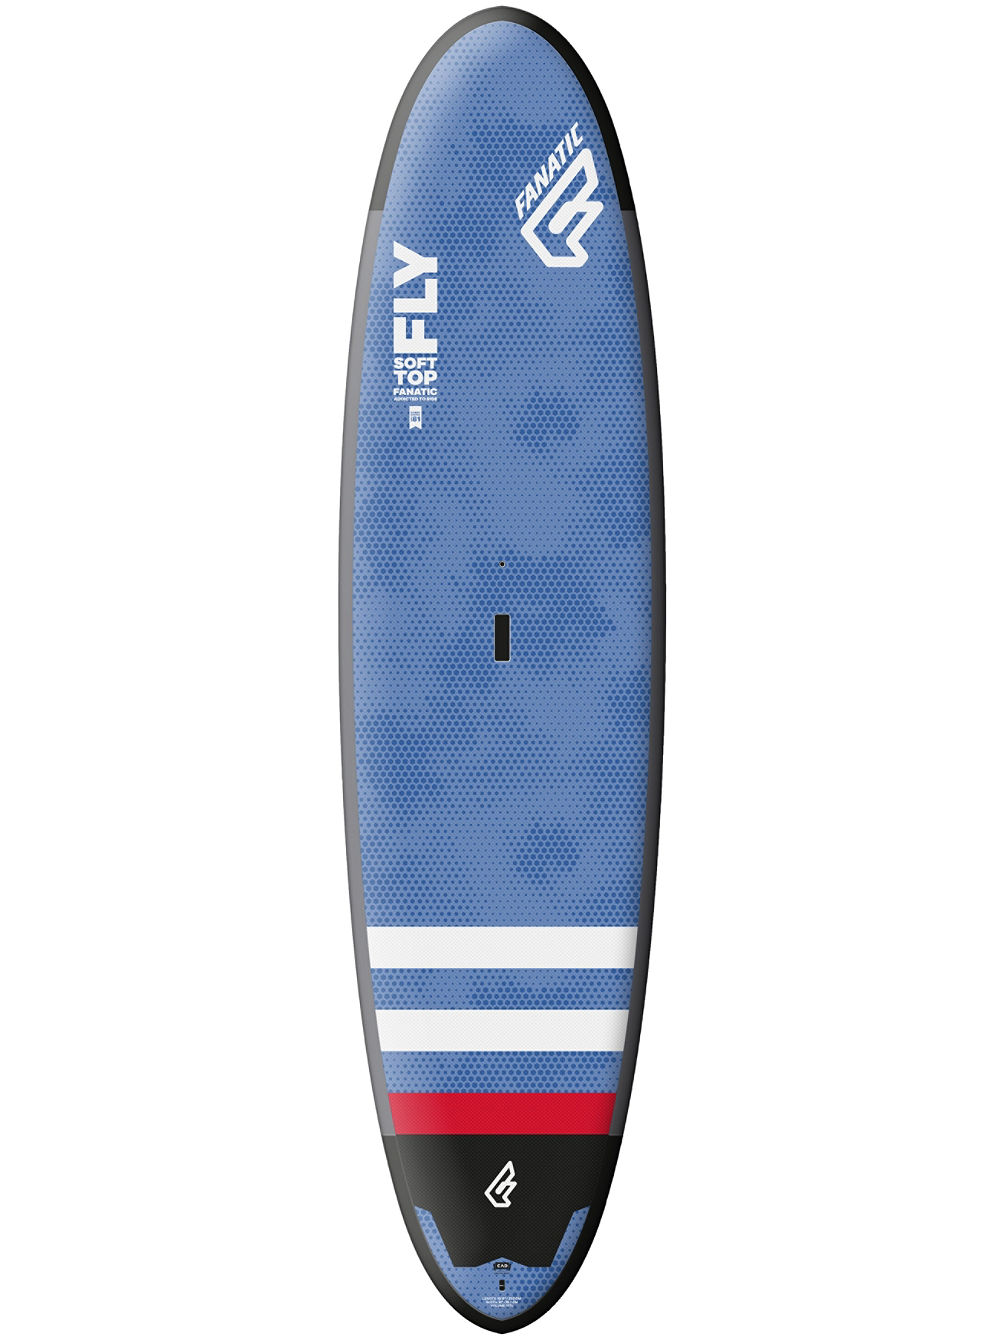 Fly Softtop 10.6 SUP Board